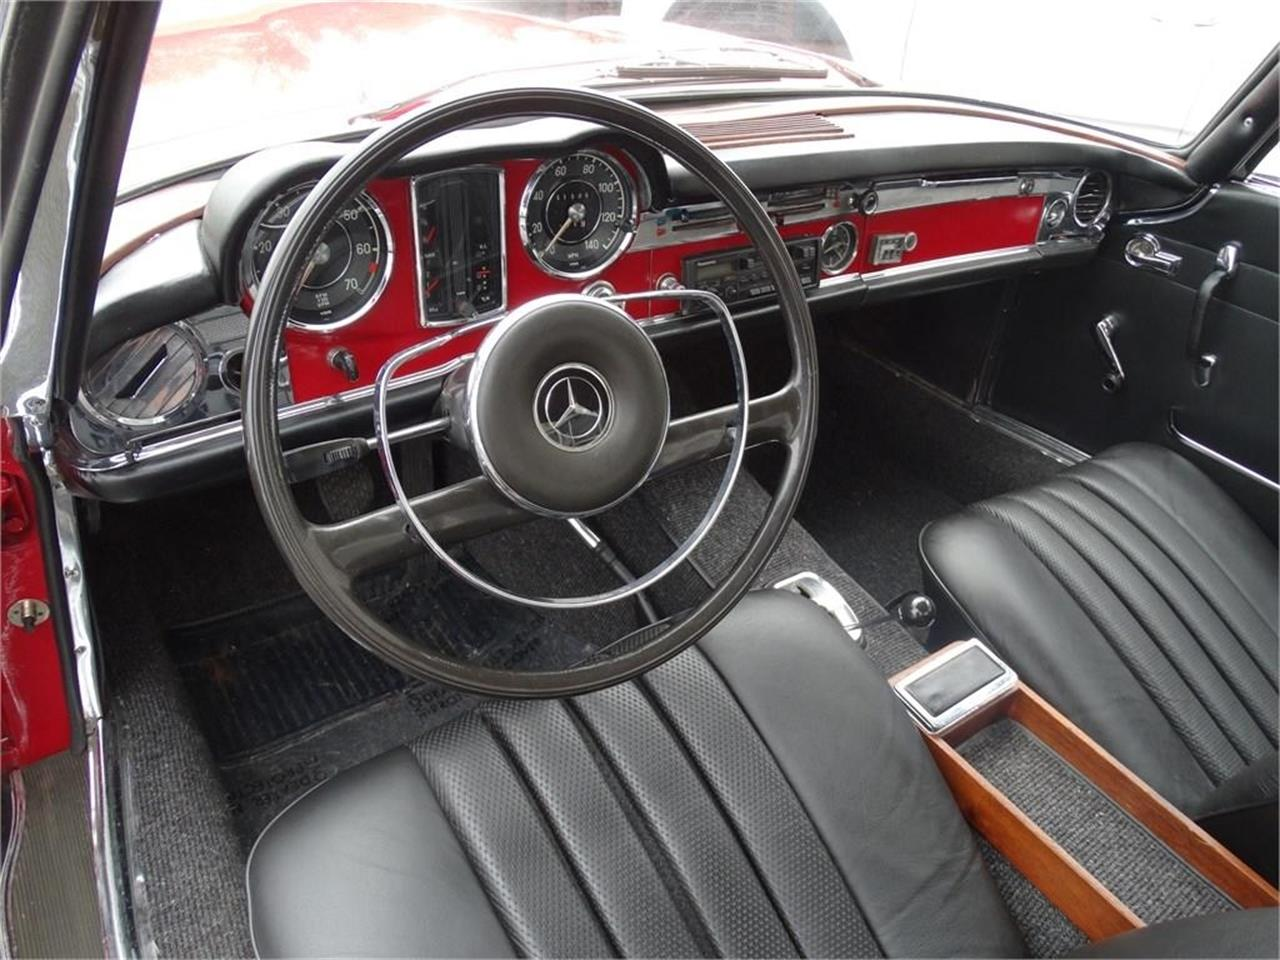 Large Picture of '67 Mercedes-Benz SL-Class located in Ohio Auction Vehicle - QDTZ